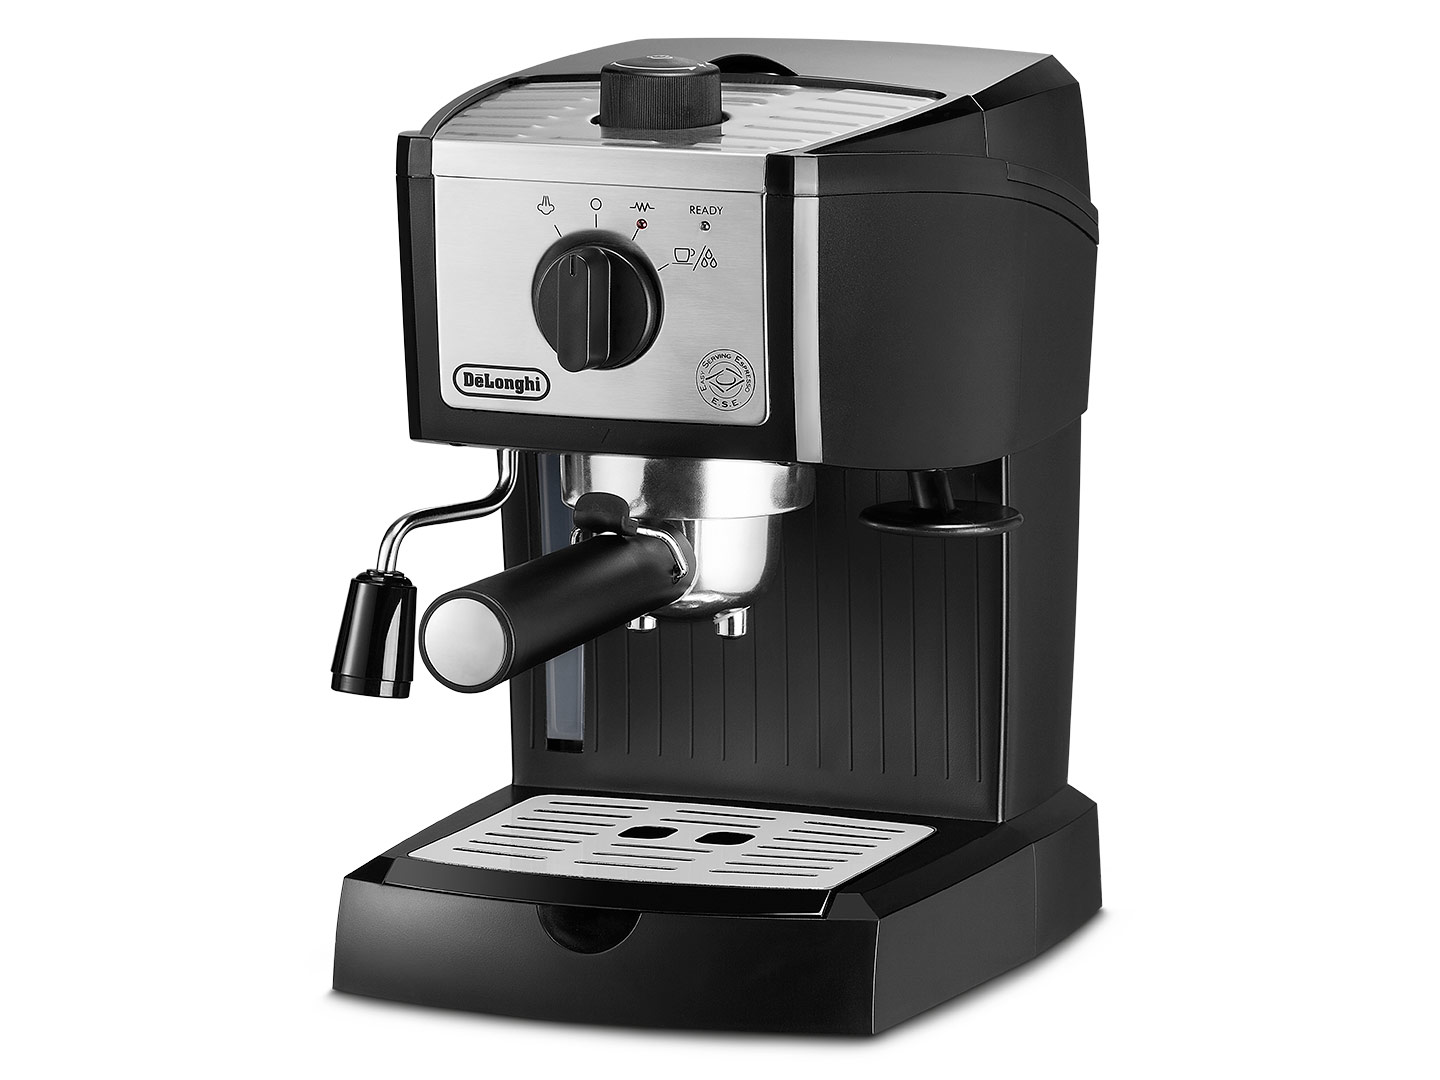 b92cec97c9b The De Longhi EC155M Pump Espresso Machine brings the coffeehouse to your  home. This compact machine is so simple to use